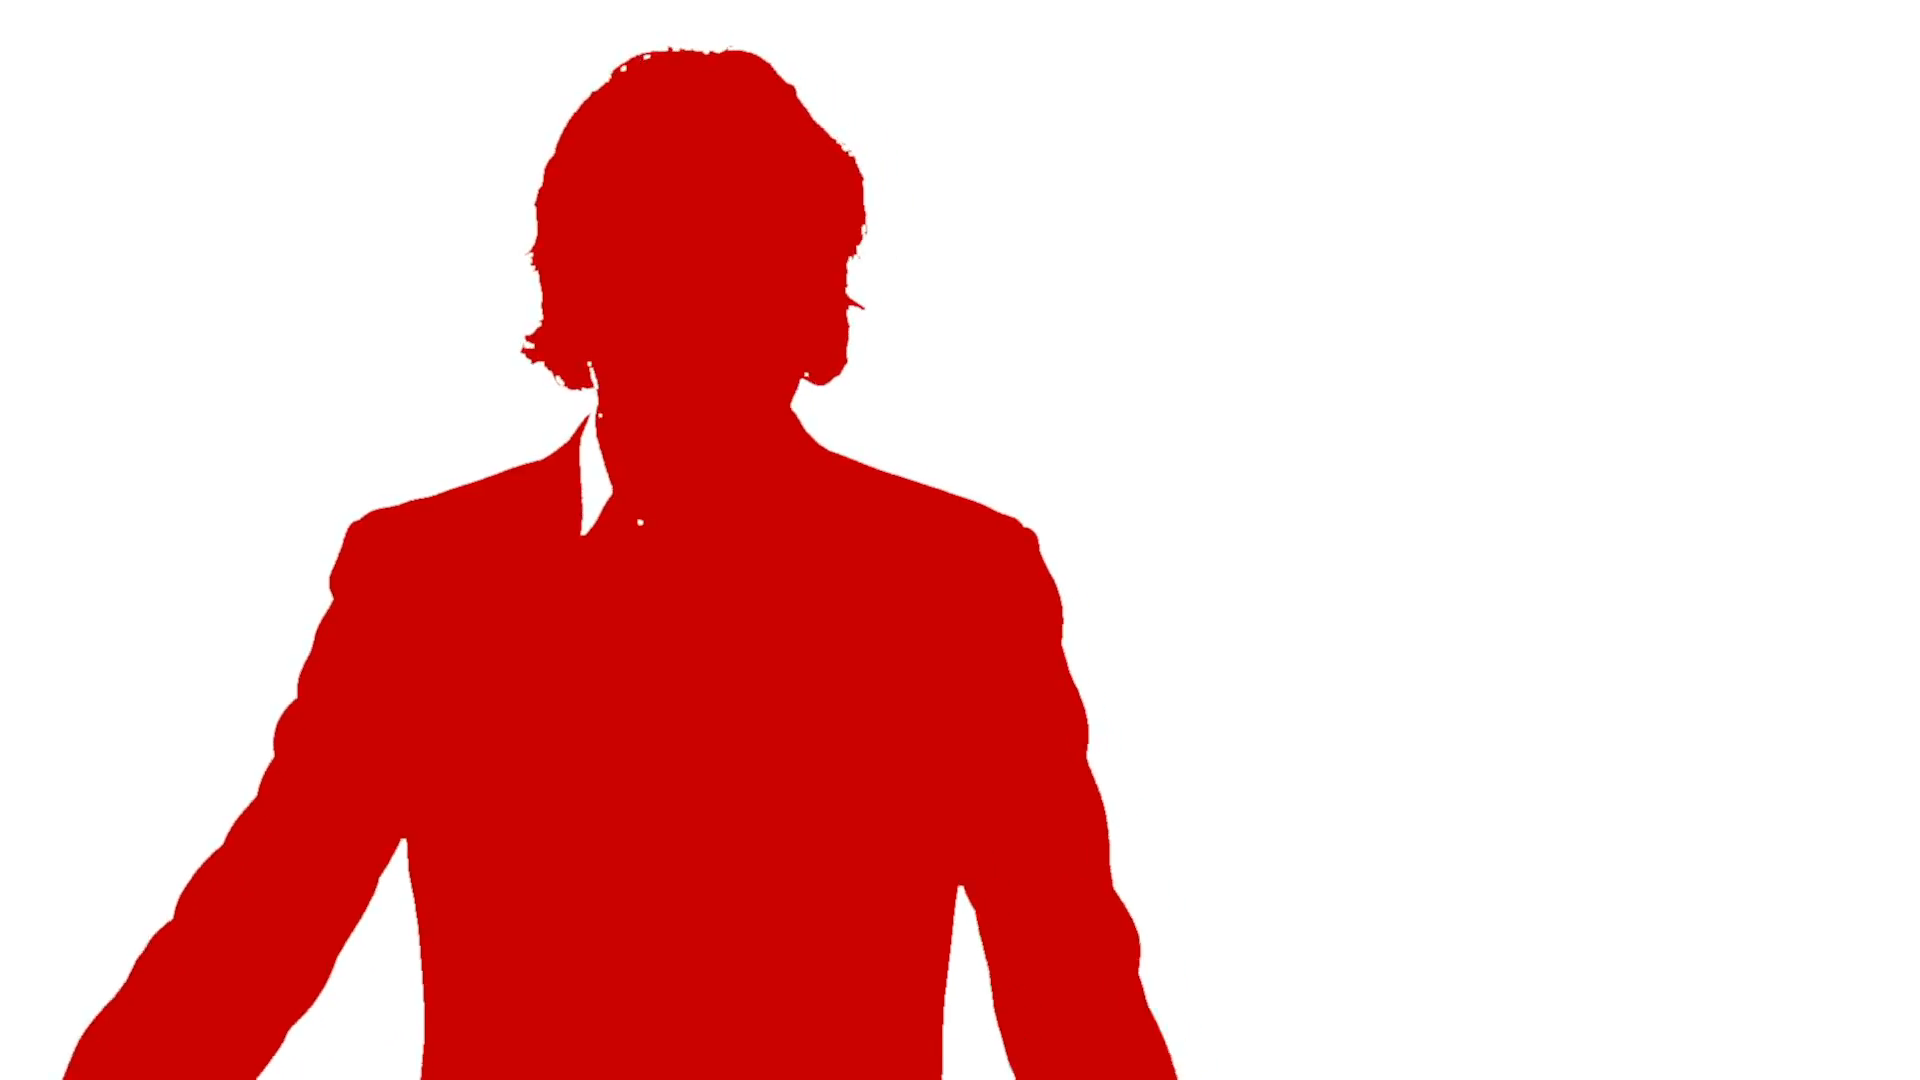 1920x1080 Silhouette Of Man Committing Suicide In Red Motion Background